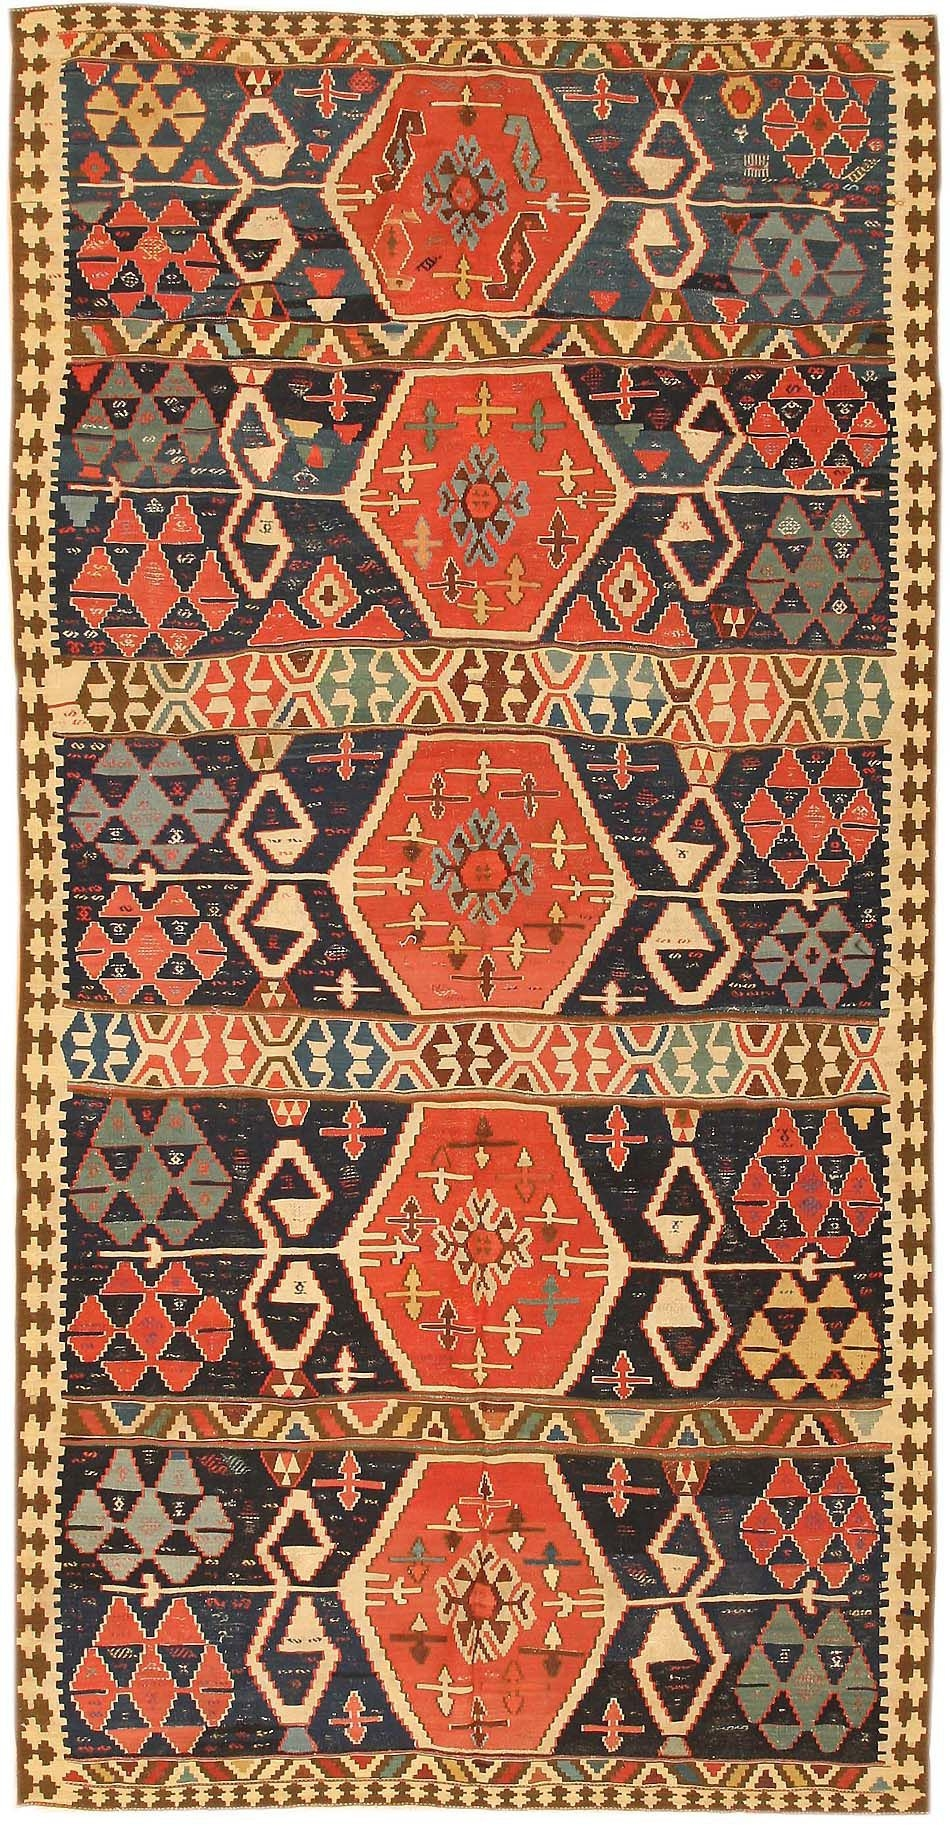 Antique Kilim Persian Carpets 43814 Nazmiyal Collection In Kilim Rugs (Image 2 of 15)